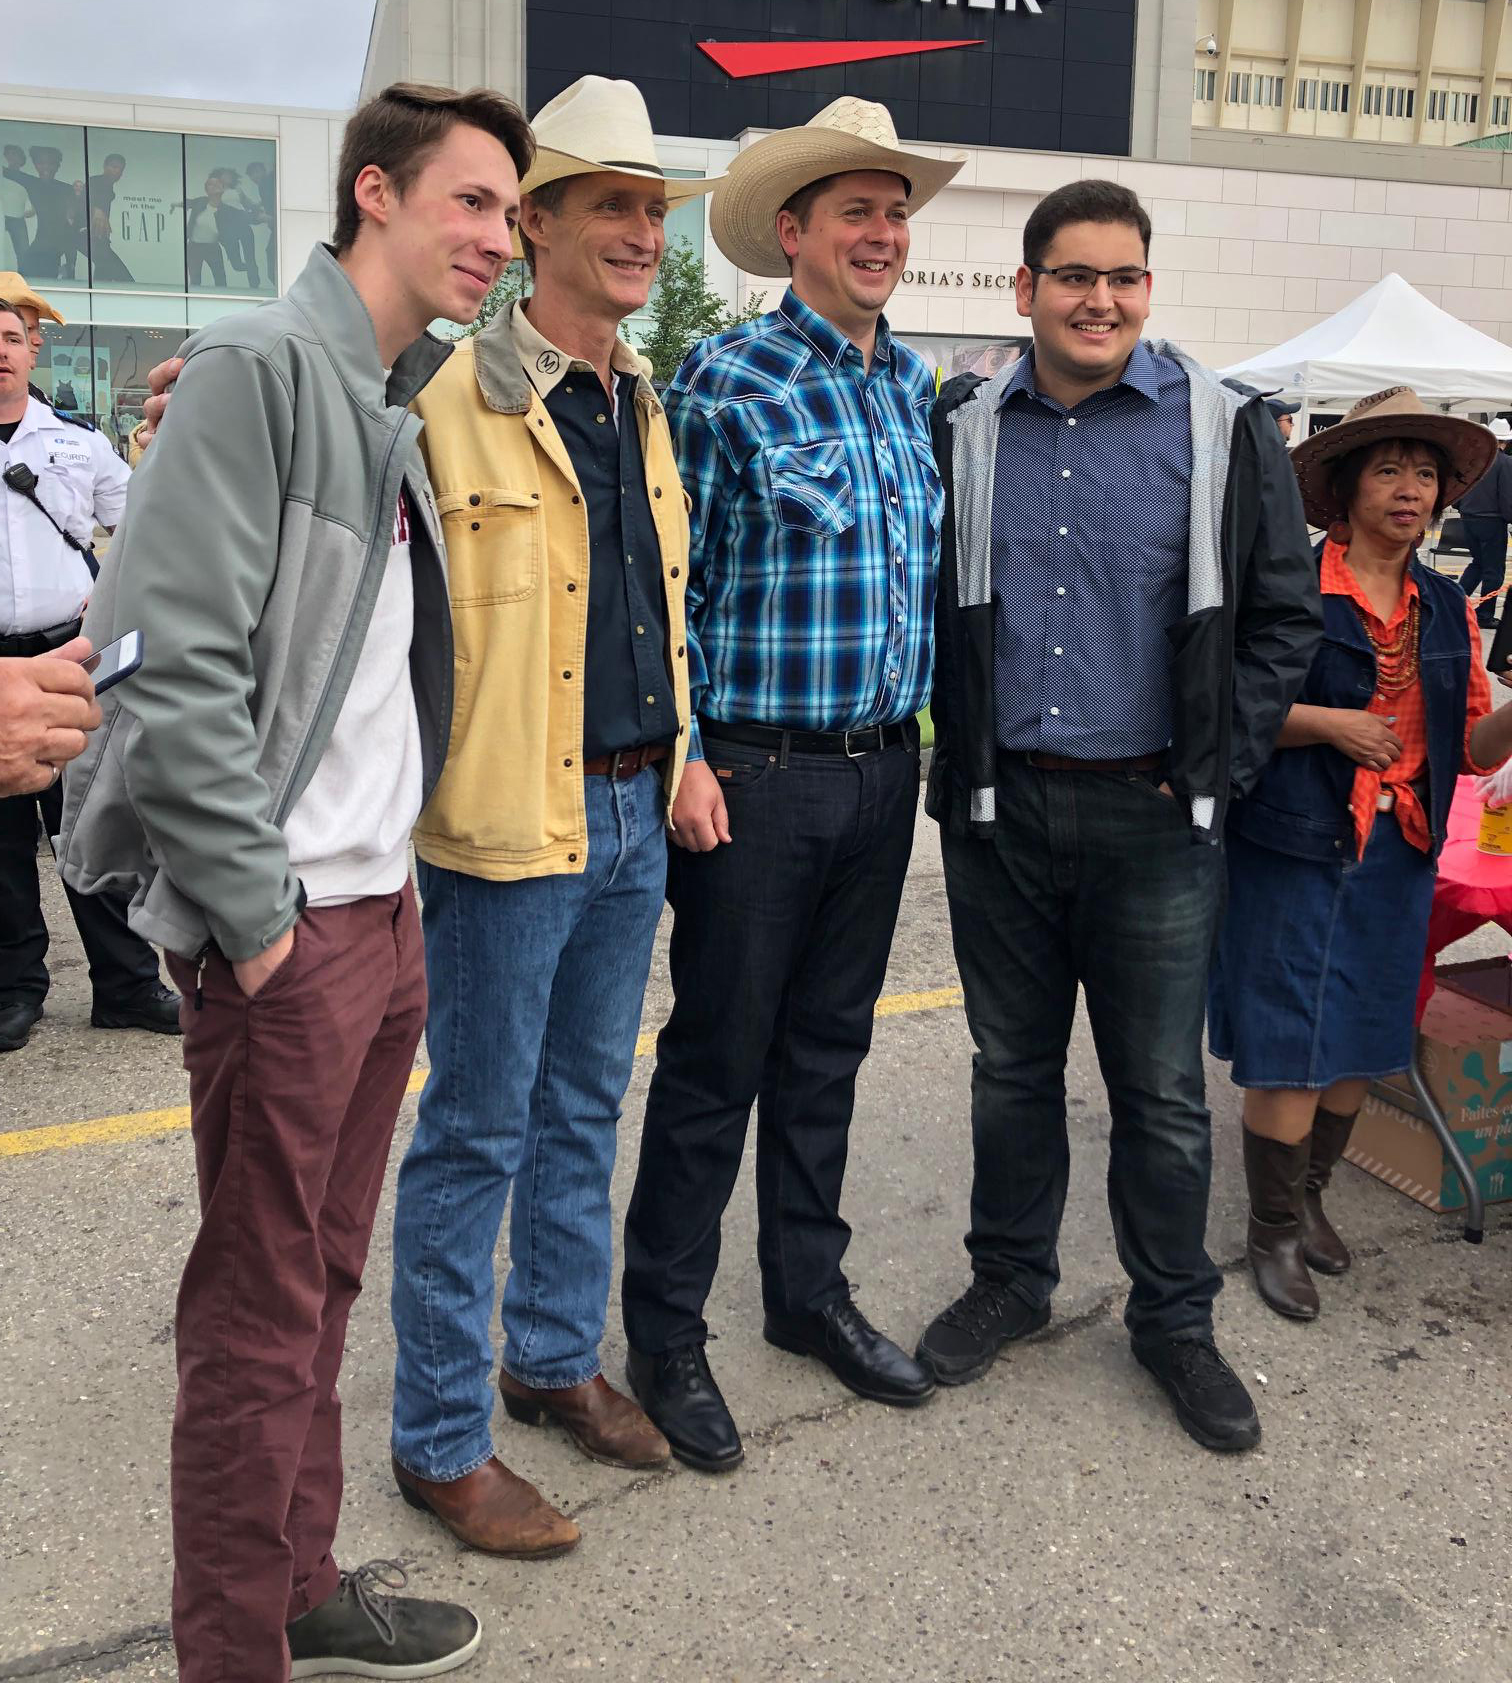 We met some folks as we travelled around to Stampede events today.